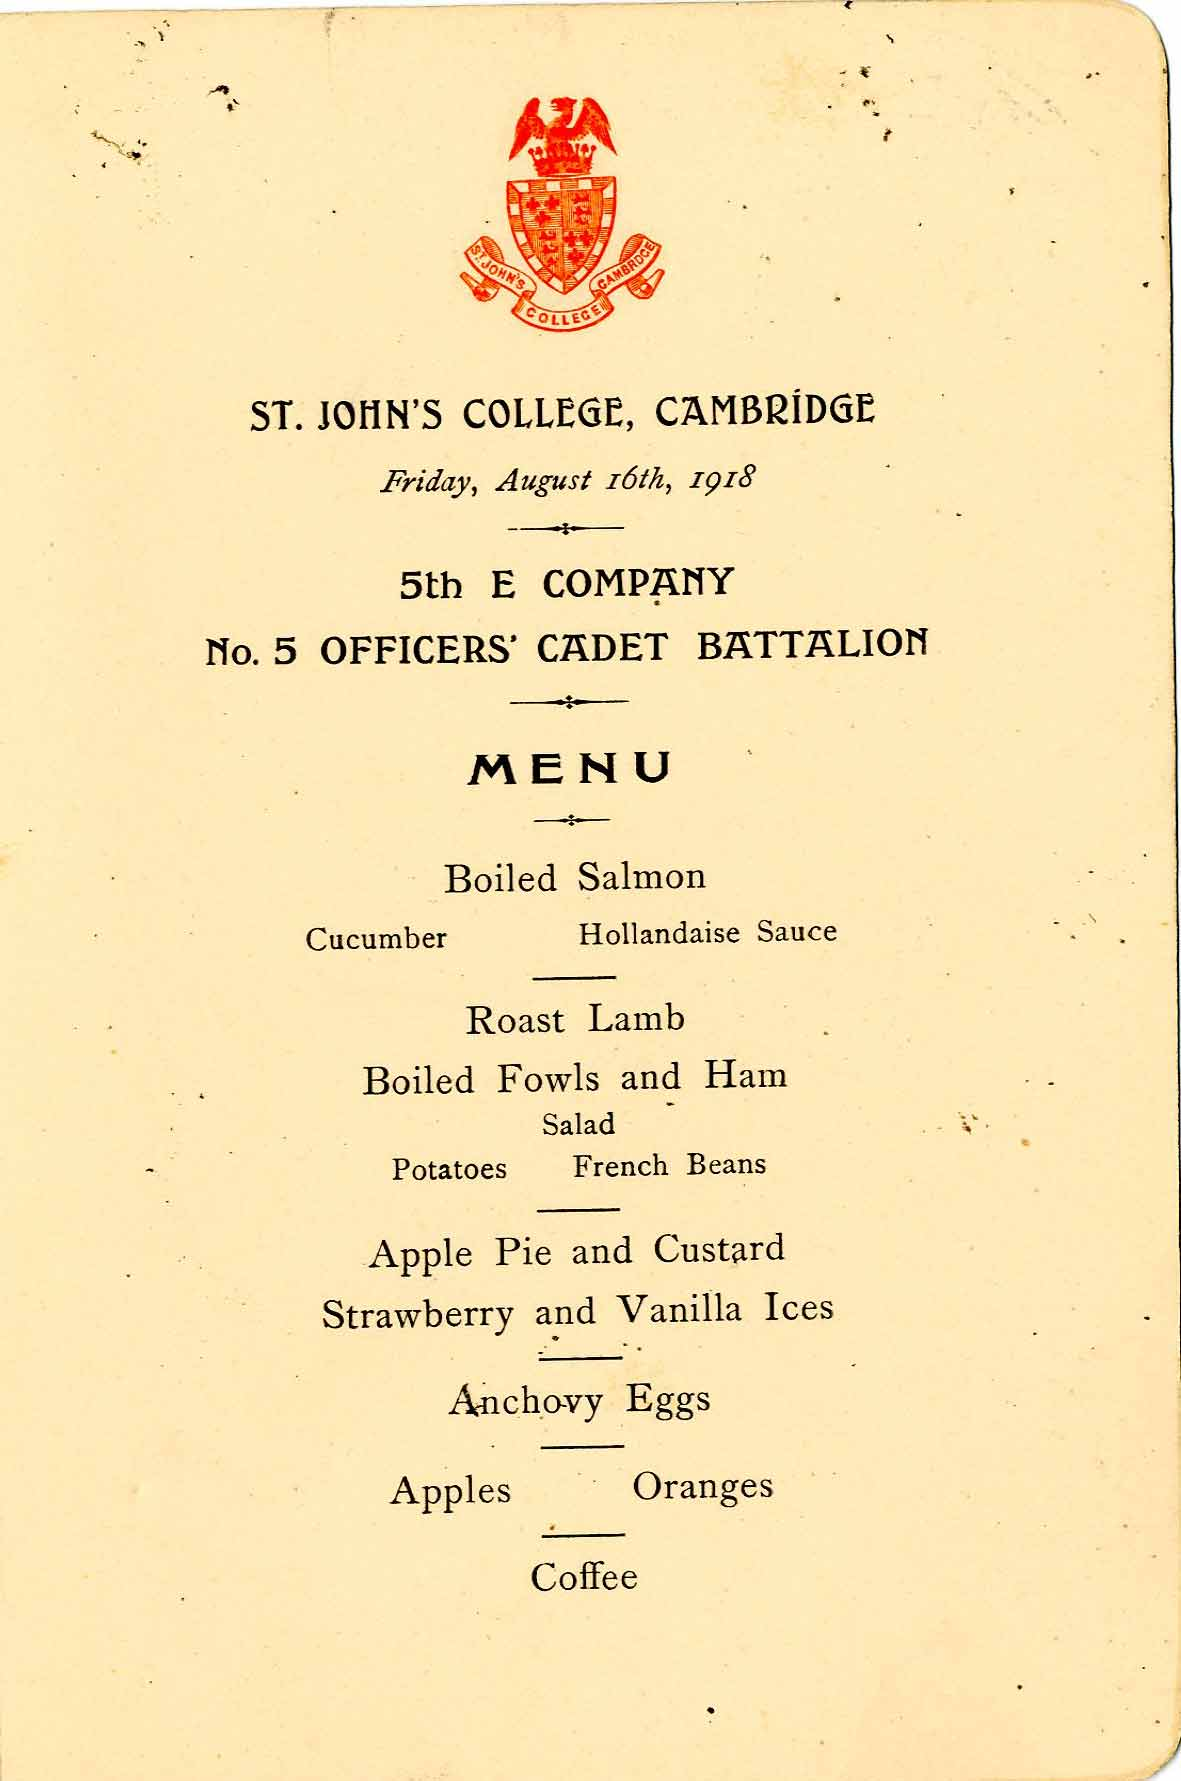 Officers' Cadet dinner menu